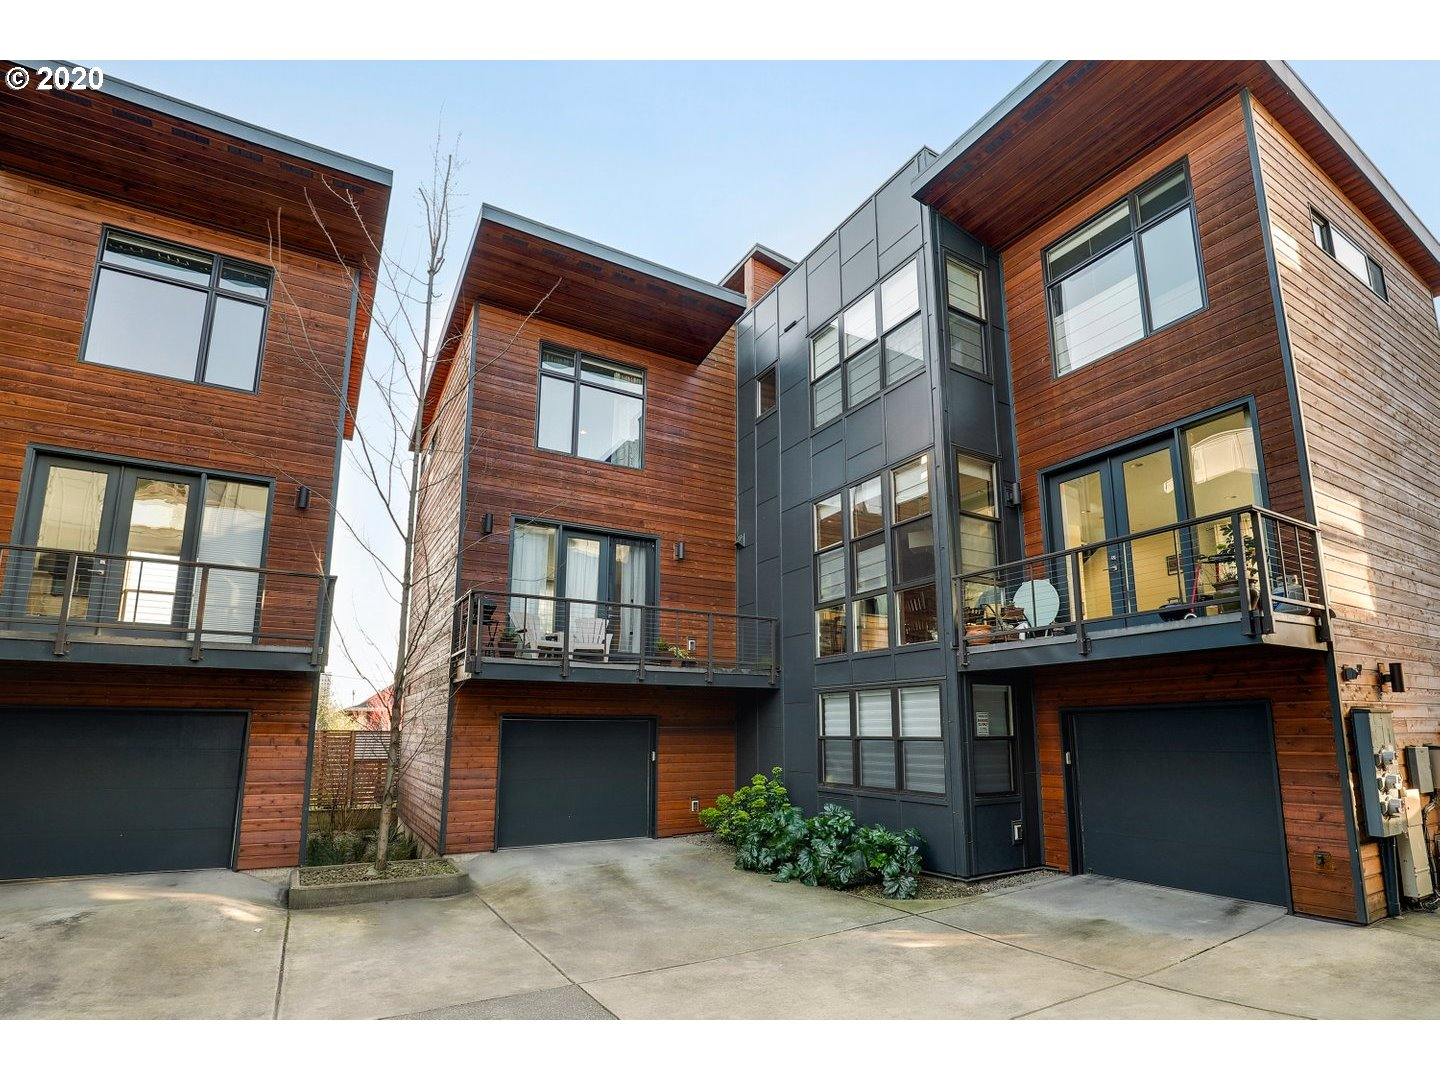 Irvington Townhouse style Condo, built w/ high-end sustainable features! This light-filled home offers a personal elevator, intercom system, Central vac, central air filtration system & private roof-top deck w/ views of Downtown and Mt. Hood! Unmatched location close to trendy shopping & restaurants in the Pearl, Mississippi & Alberta Arts; also close to MAXline, parks, schools & downtown! Open concept kitchen featuring quartz counters, designer back-splash, high-end stainless steel appliances. [Home Energy Score = 8. HES Report at https://rpt.greenbuildingregistry.com/hes/OR10166660]